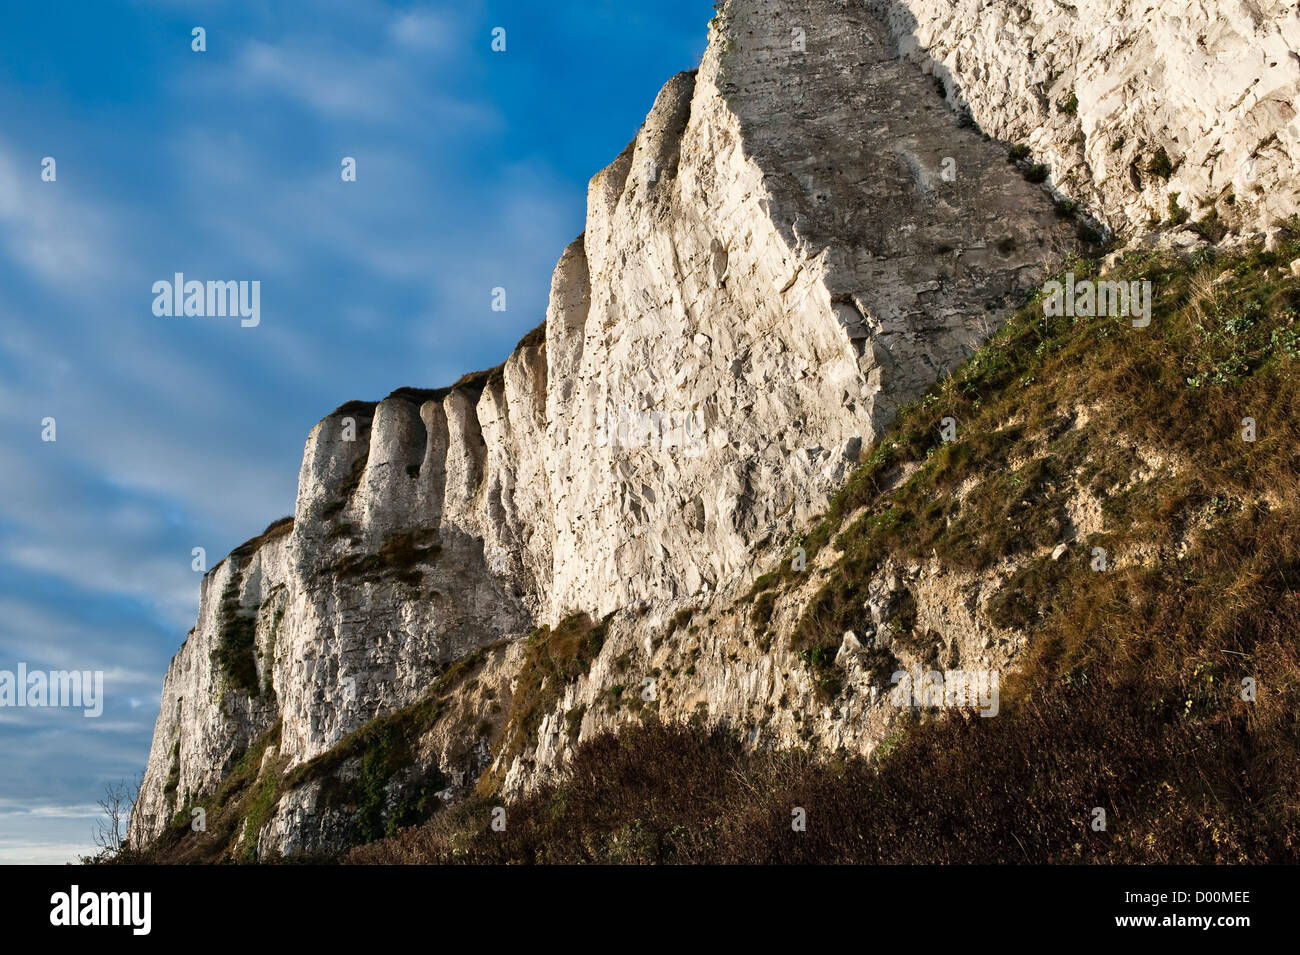 The White Cliffs, between Deal and Dover - Stock Image